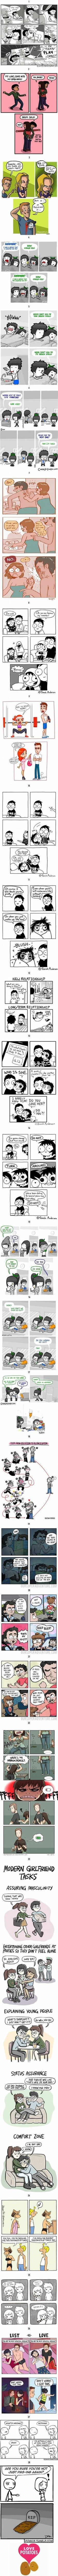 28 Relationship Comics That Perfectly Sum up What Every Long-Term Relationship Is Like